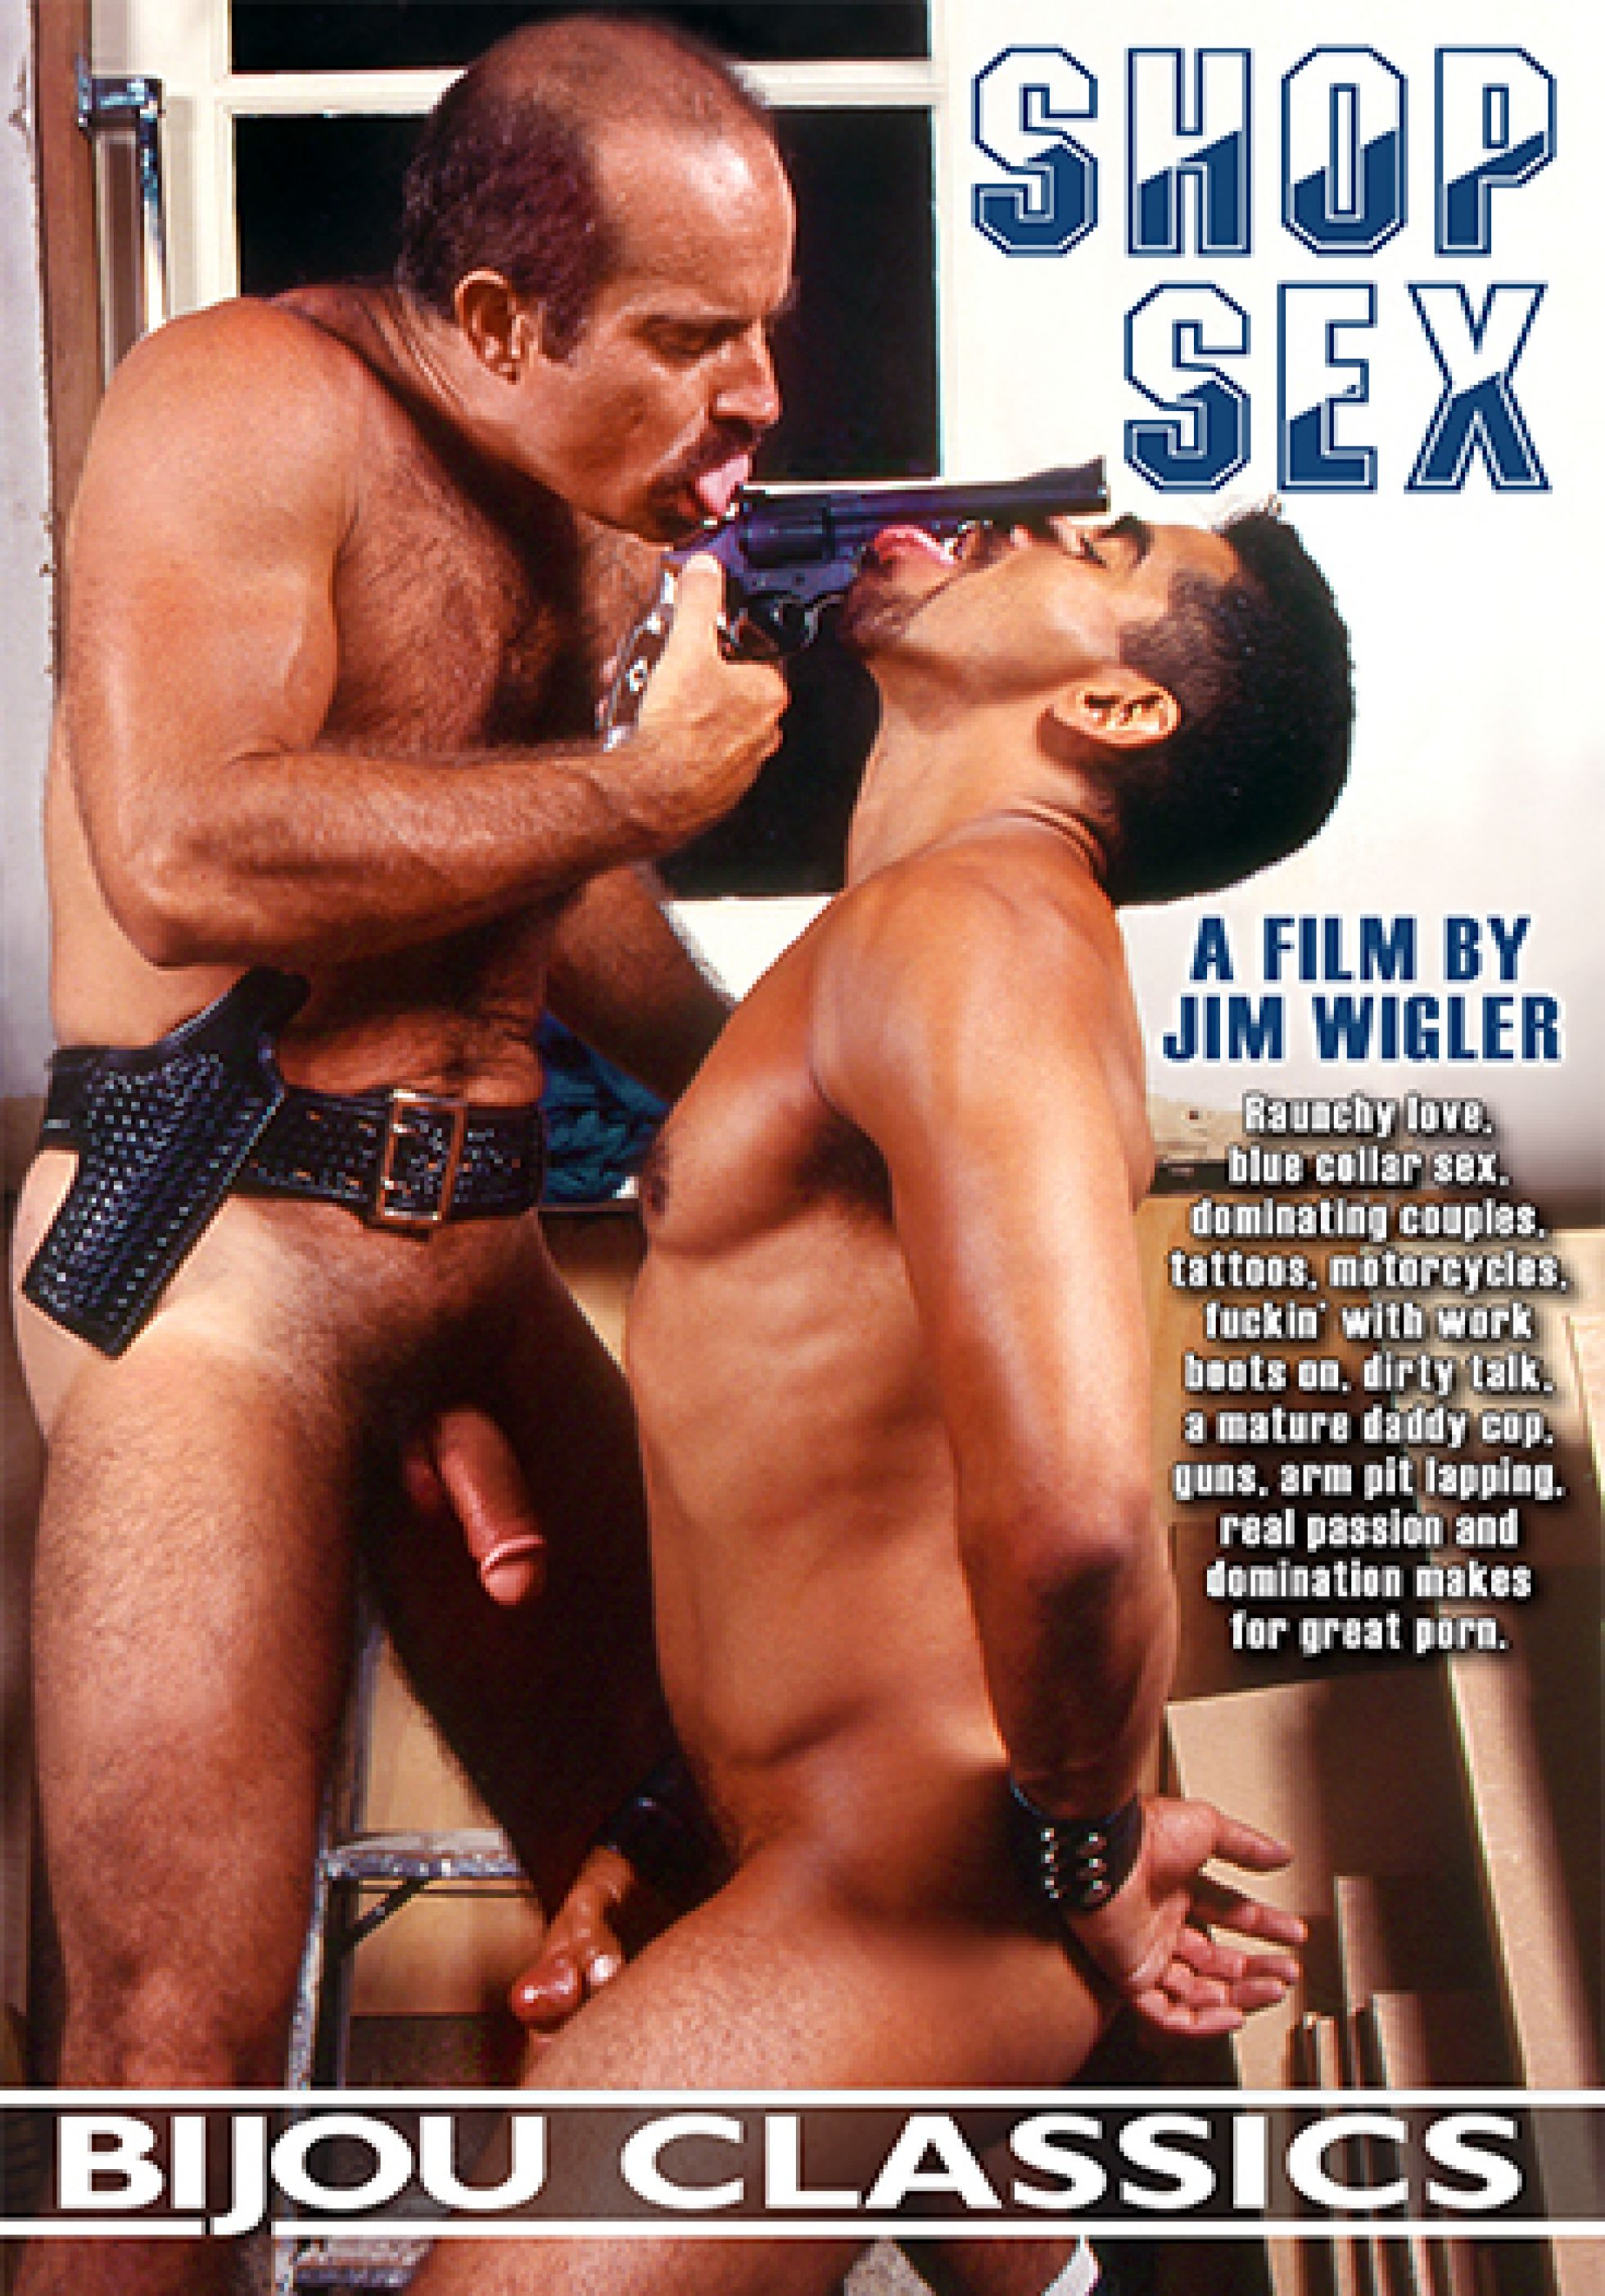 Raunchy gay porn dvd images 253